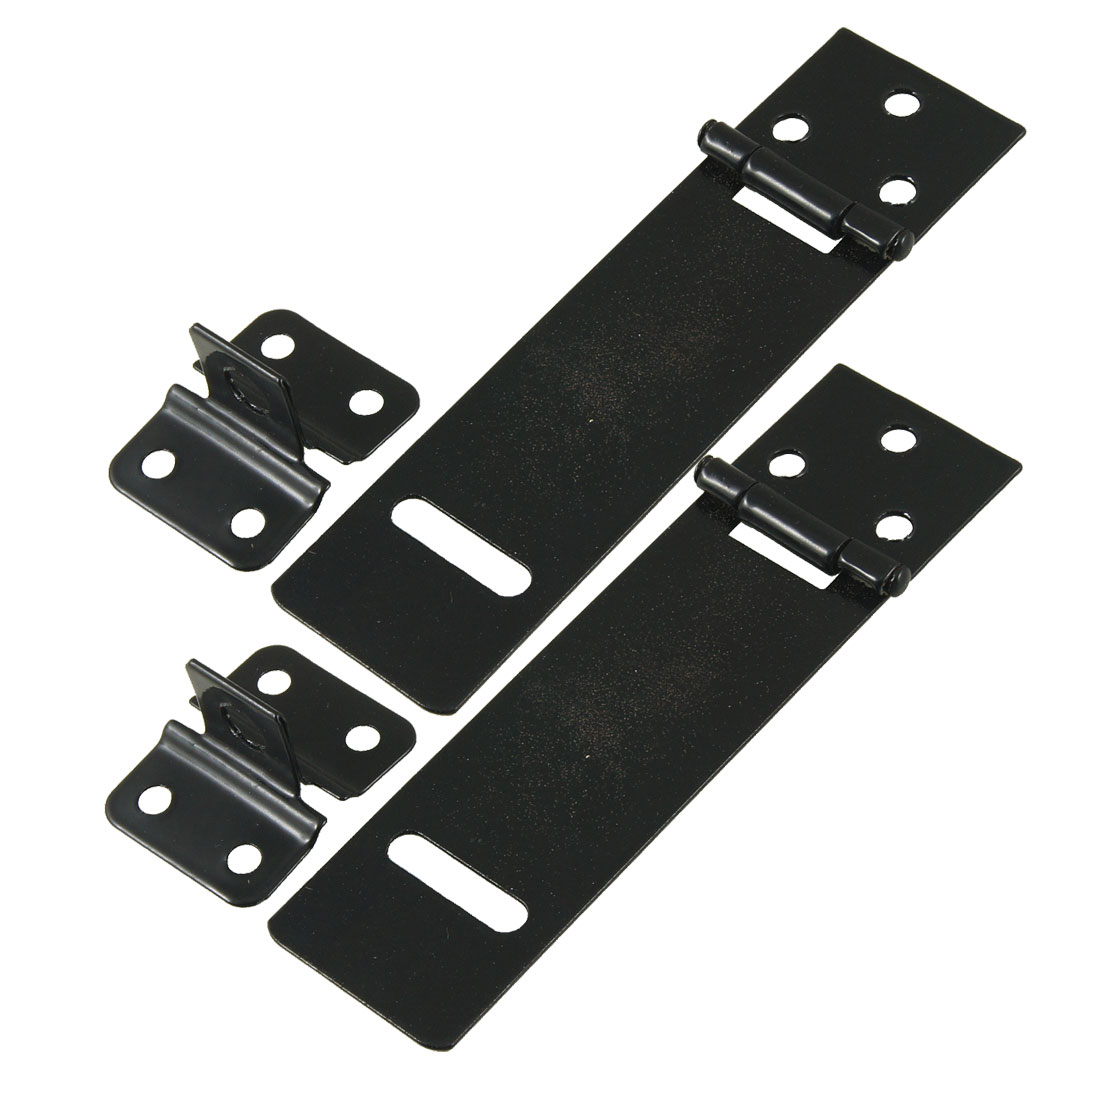 "Replacement Padlock Door Cabinet Mate Black 4.7"" Metal Hasp Staple 2 Set"